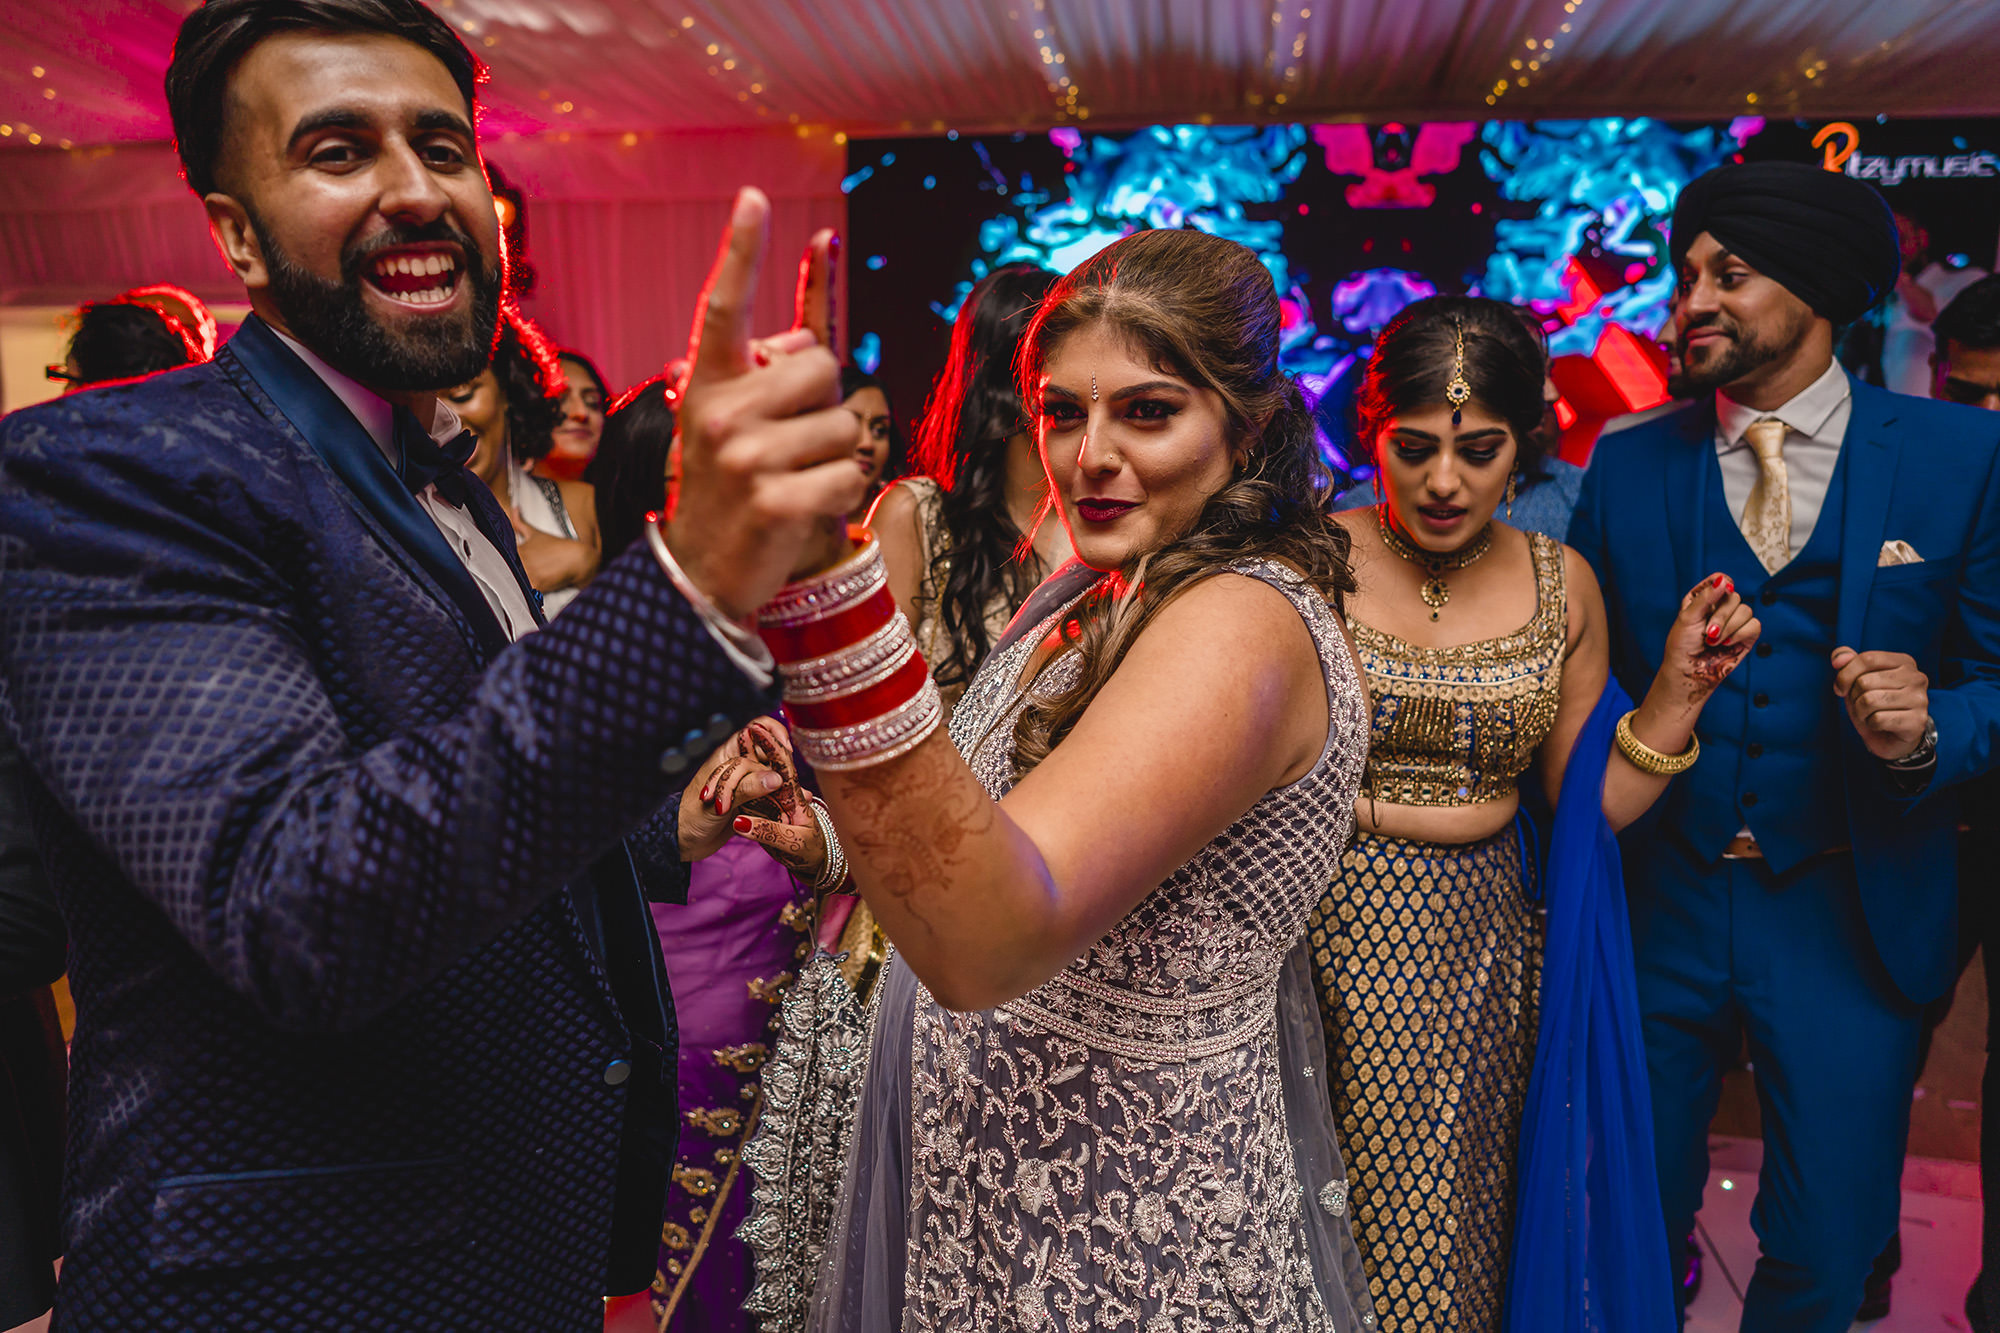 bride dancing on the dancefloor with friends and family